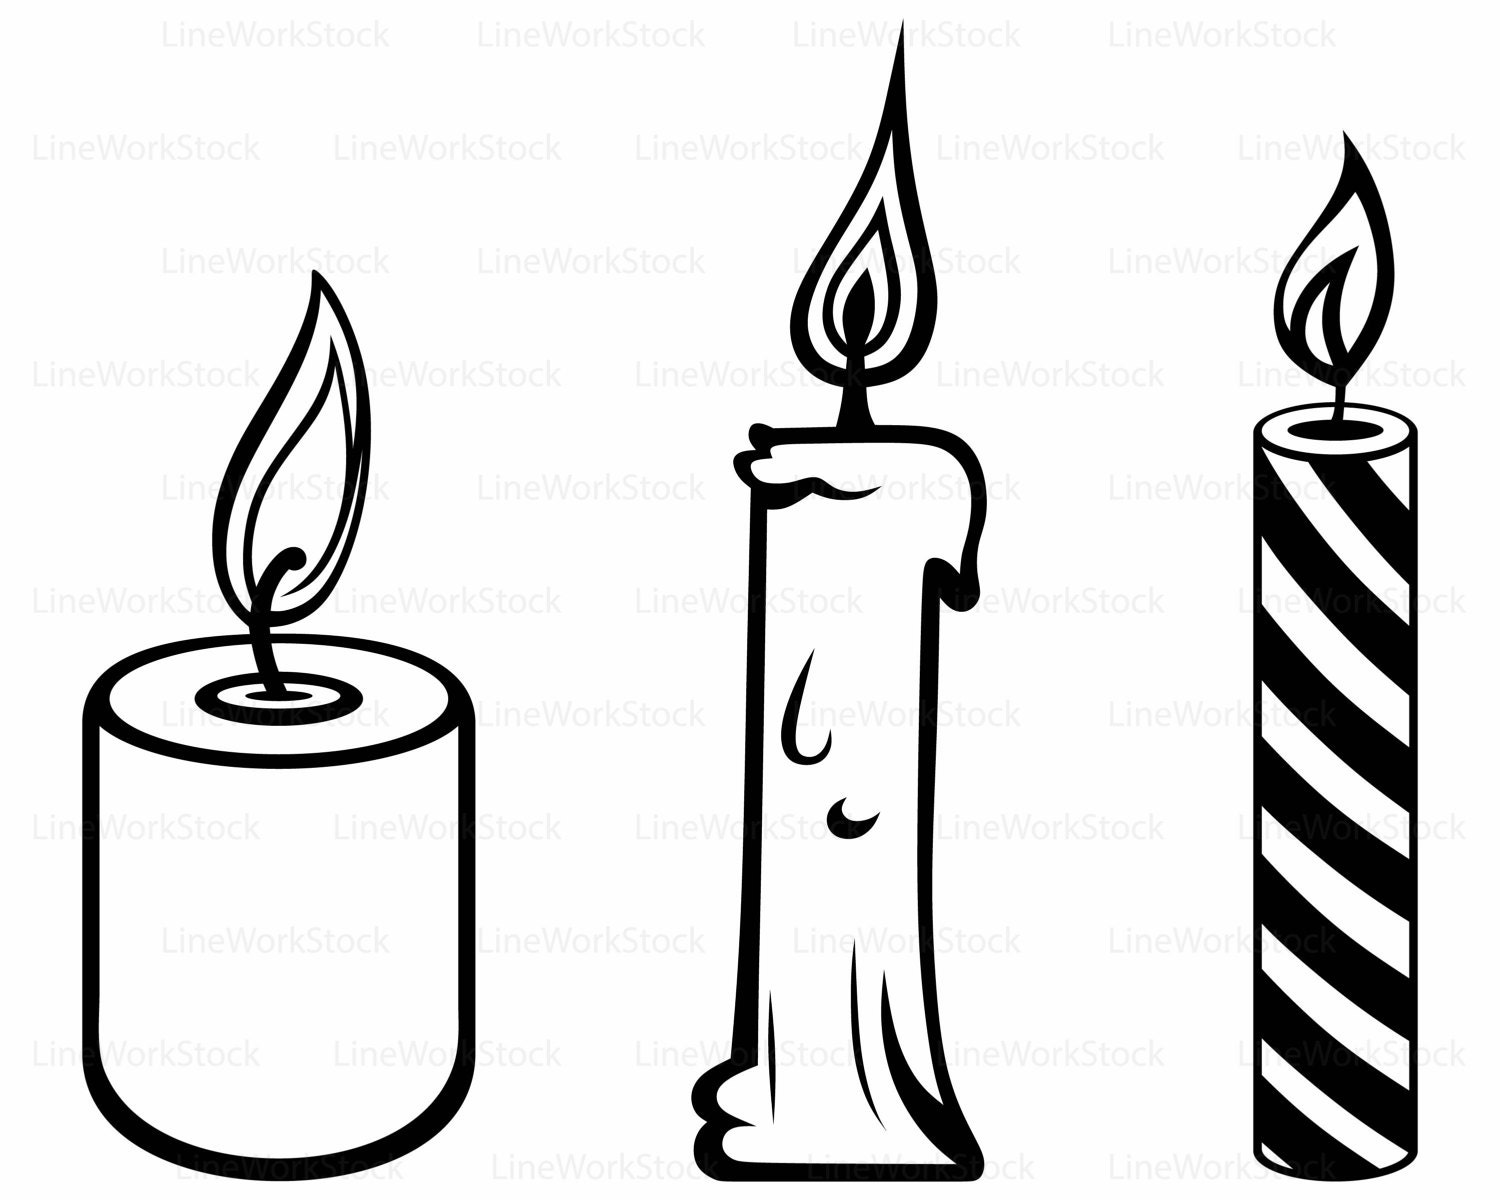 Candles svg,clipart,candle svg,candles silhouette,candle cricut ... for Candle Clip Art Black And White  587fsj